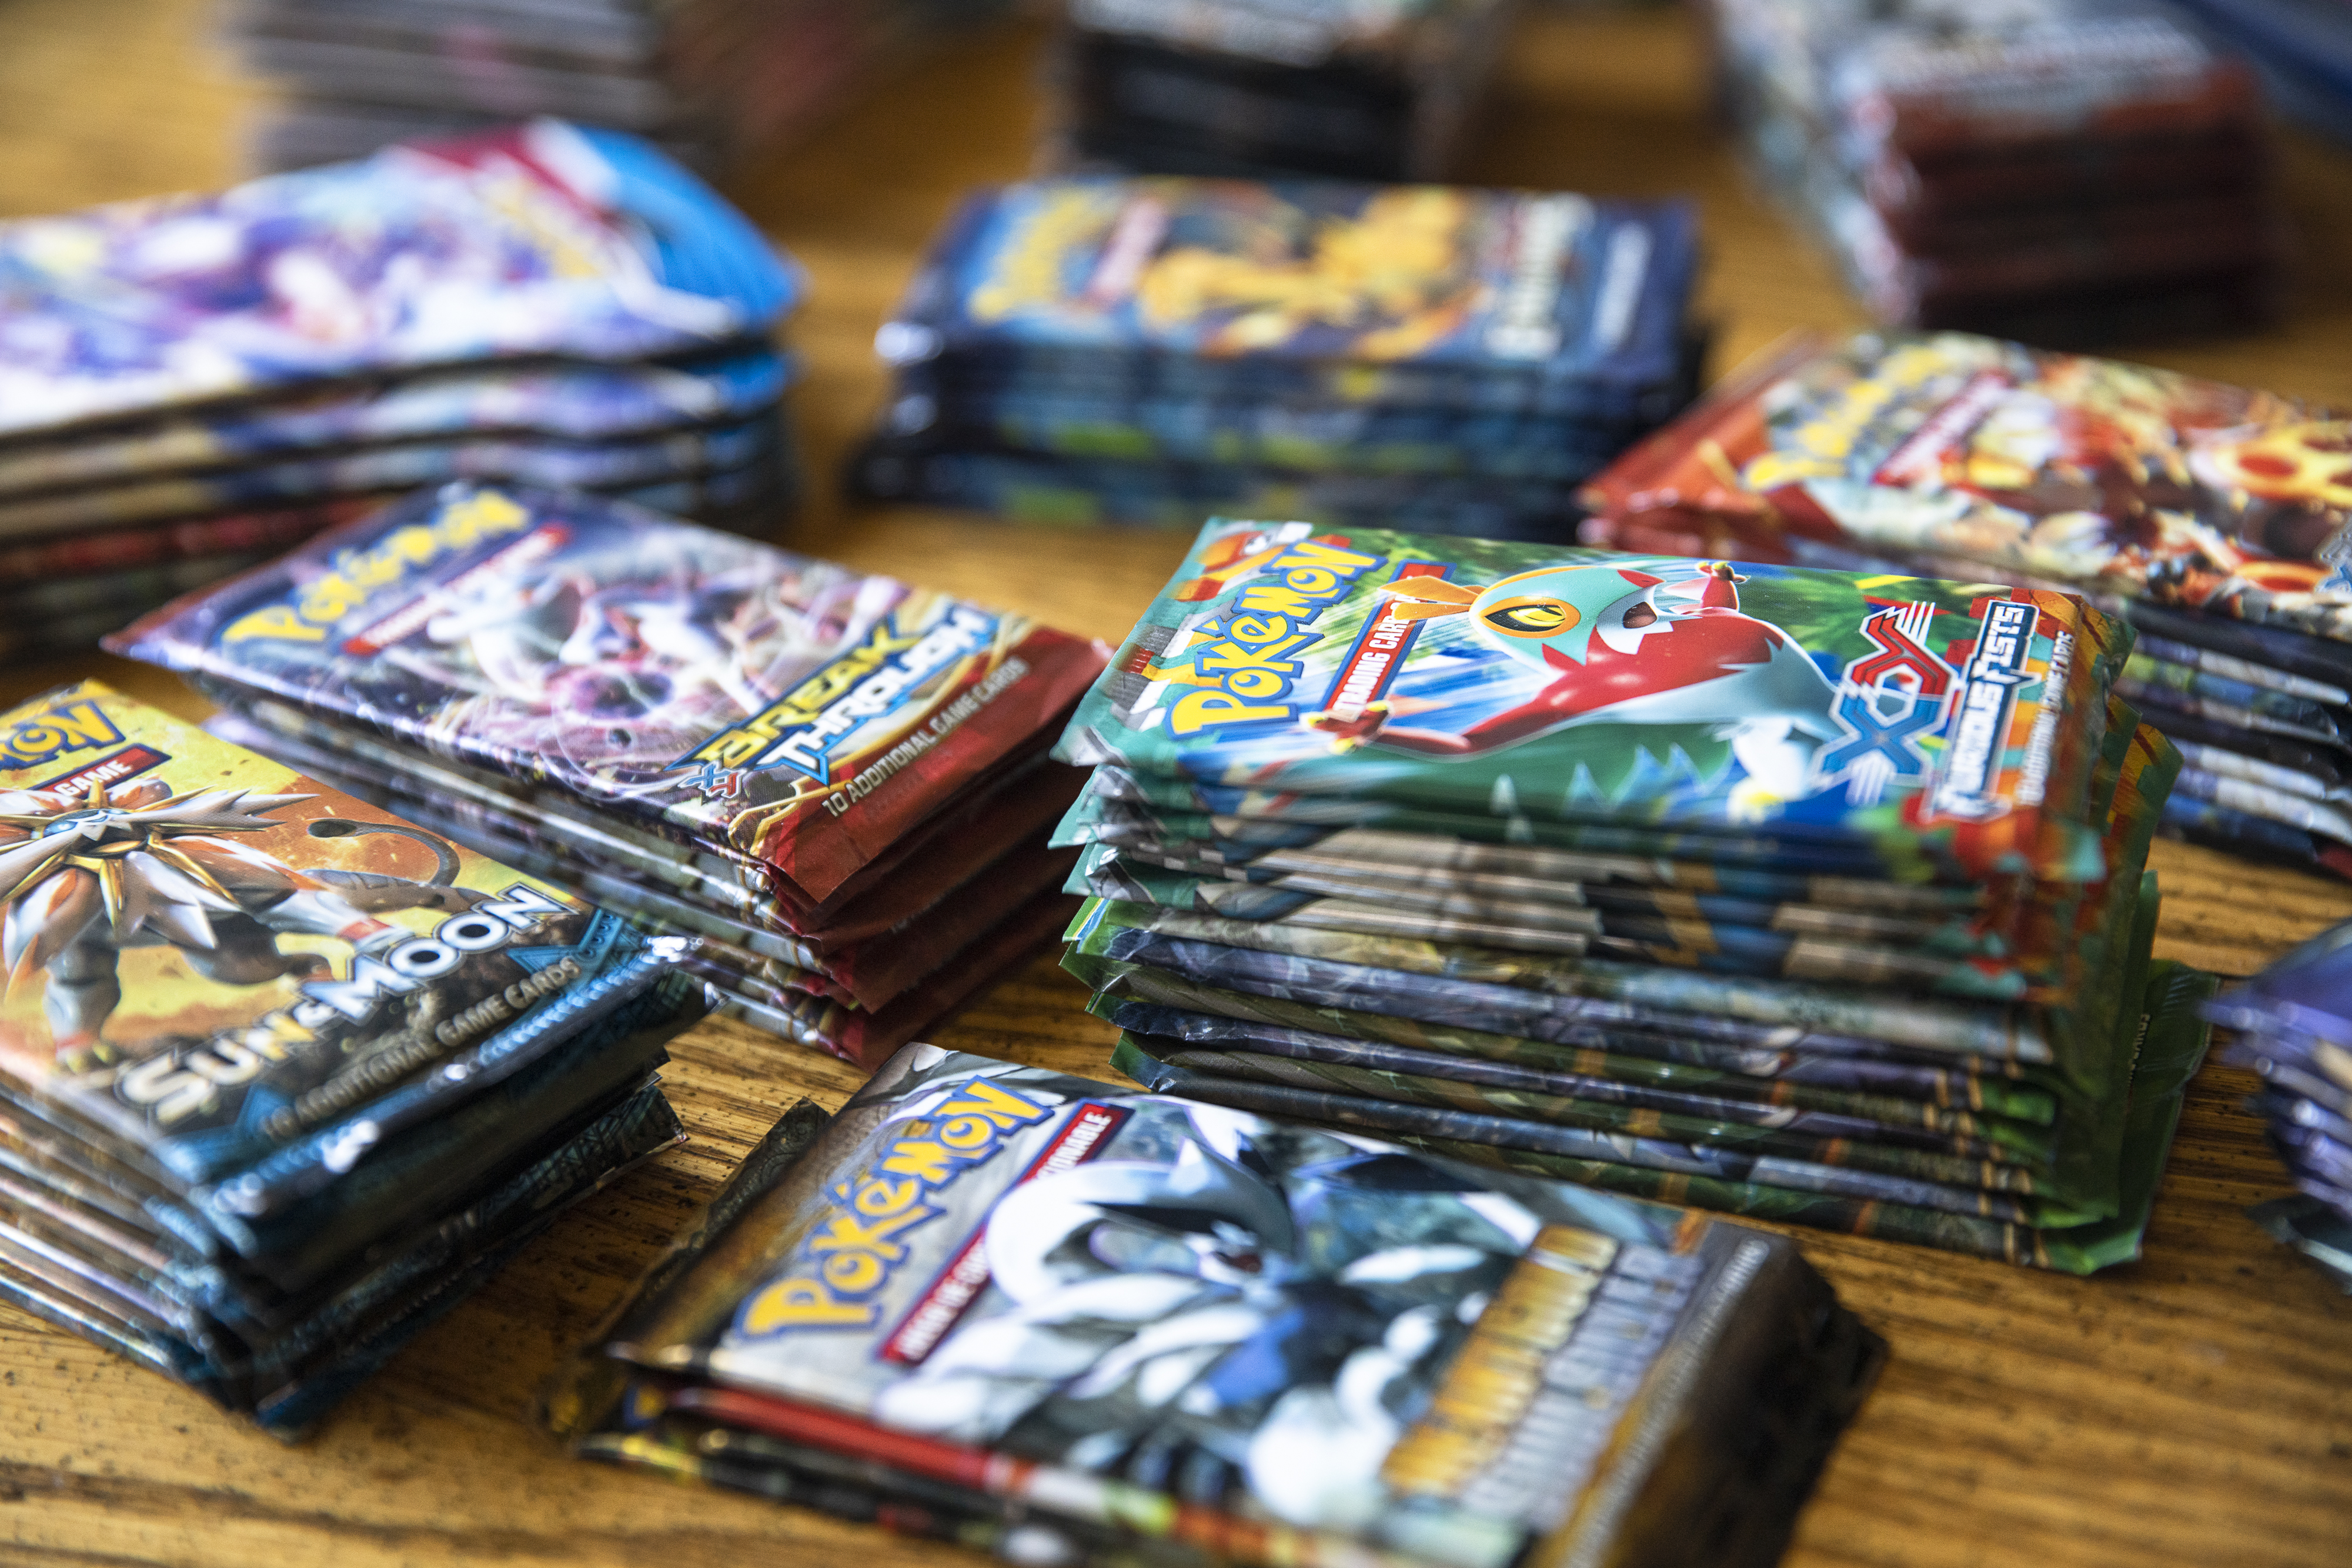 Stacks of trading cards.